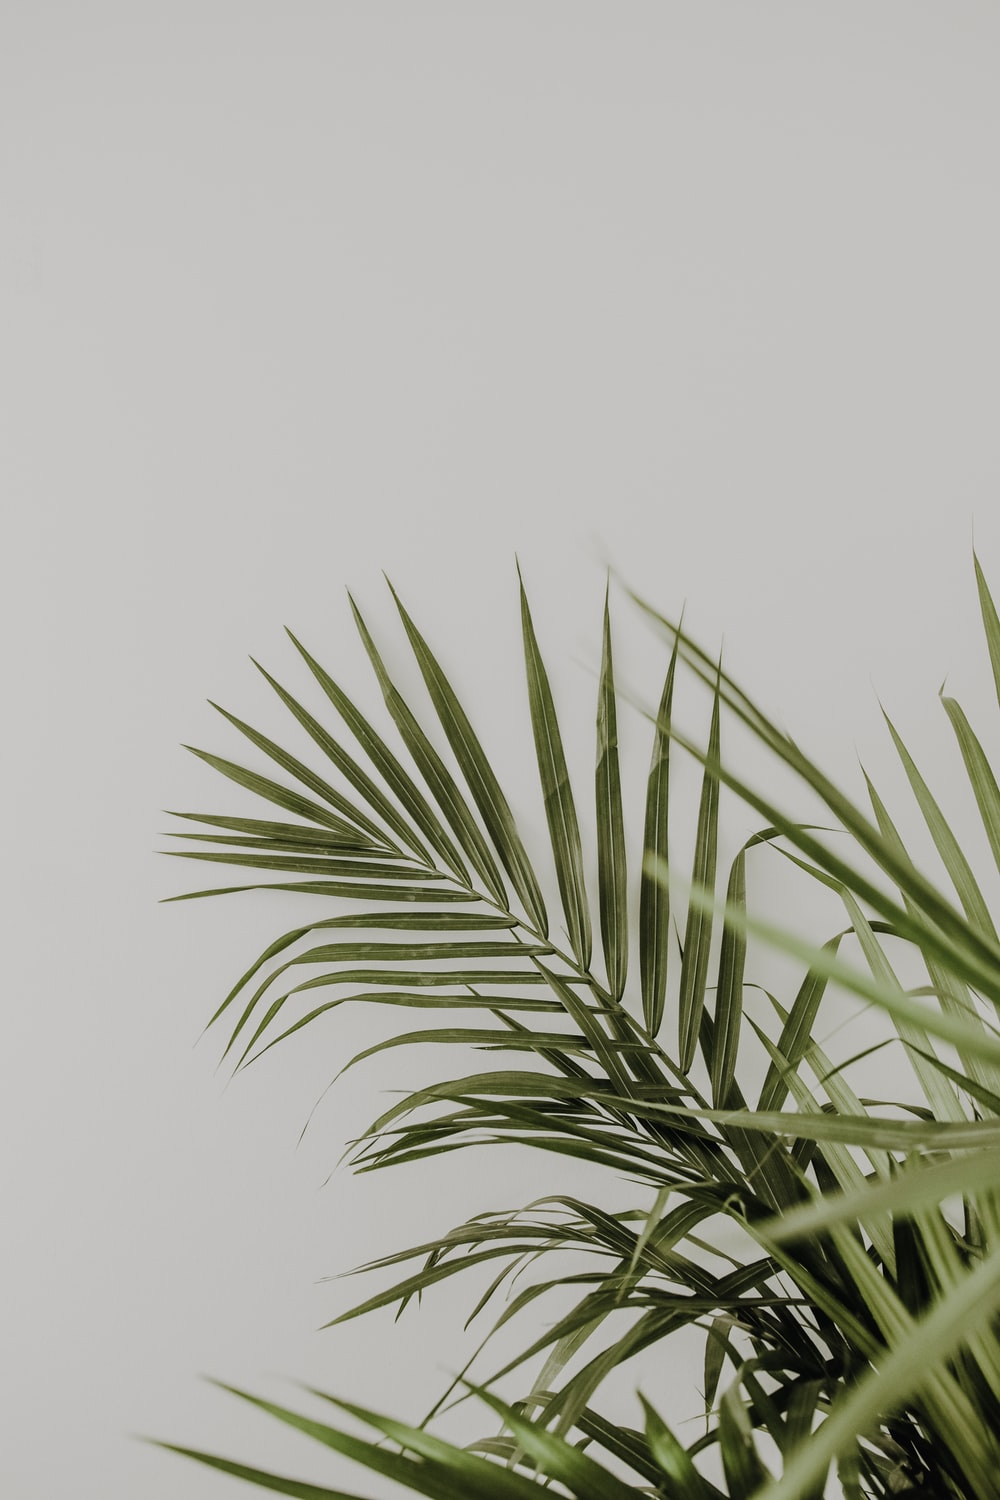 minimalist photography of green-leafed leaves in white background